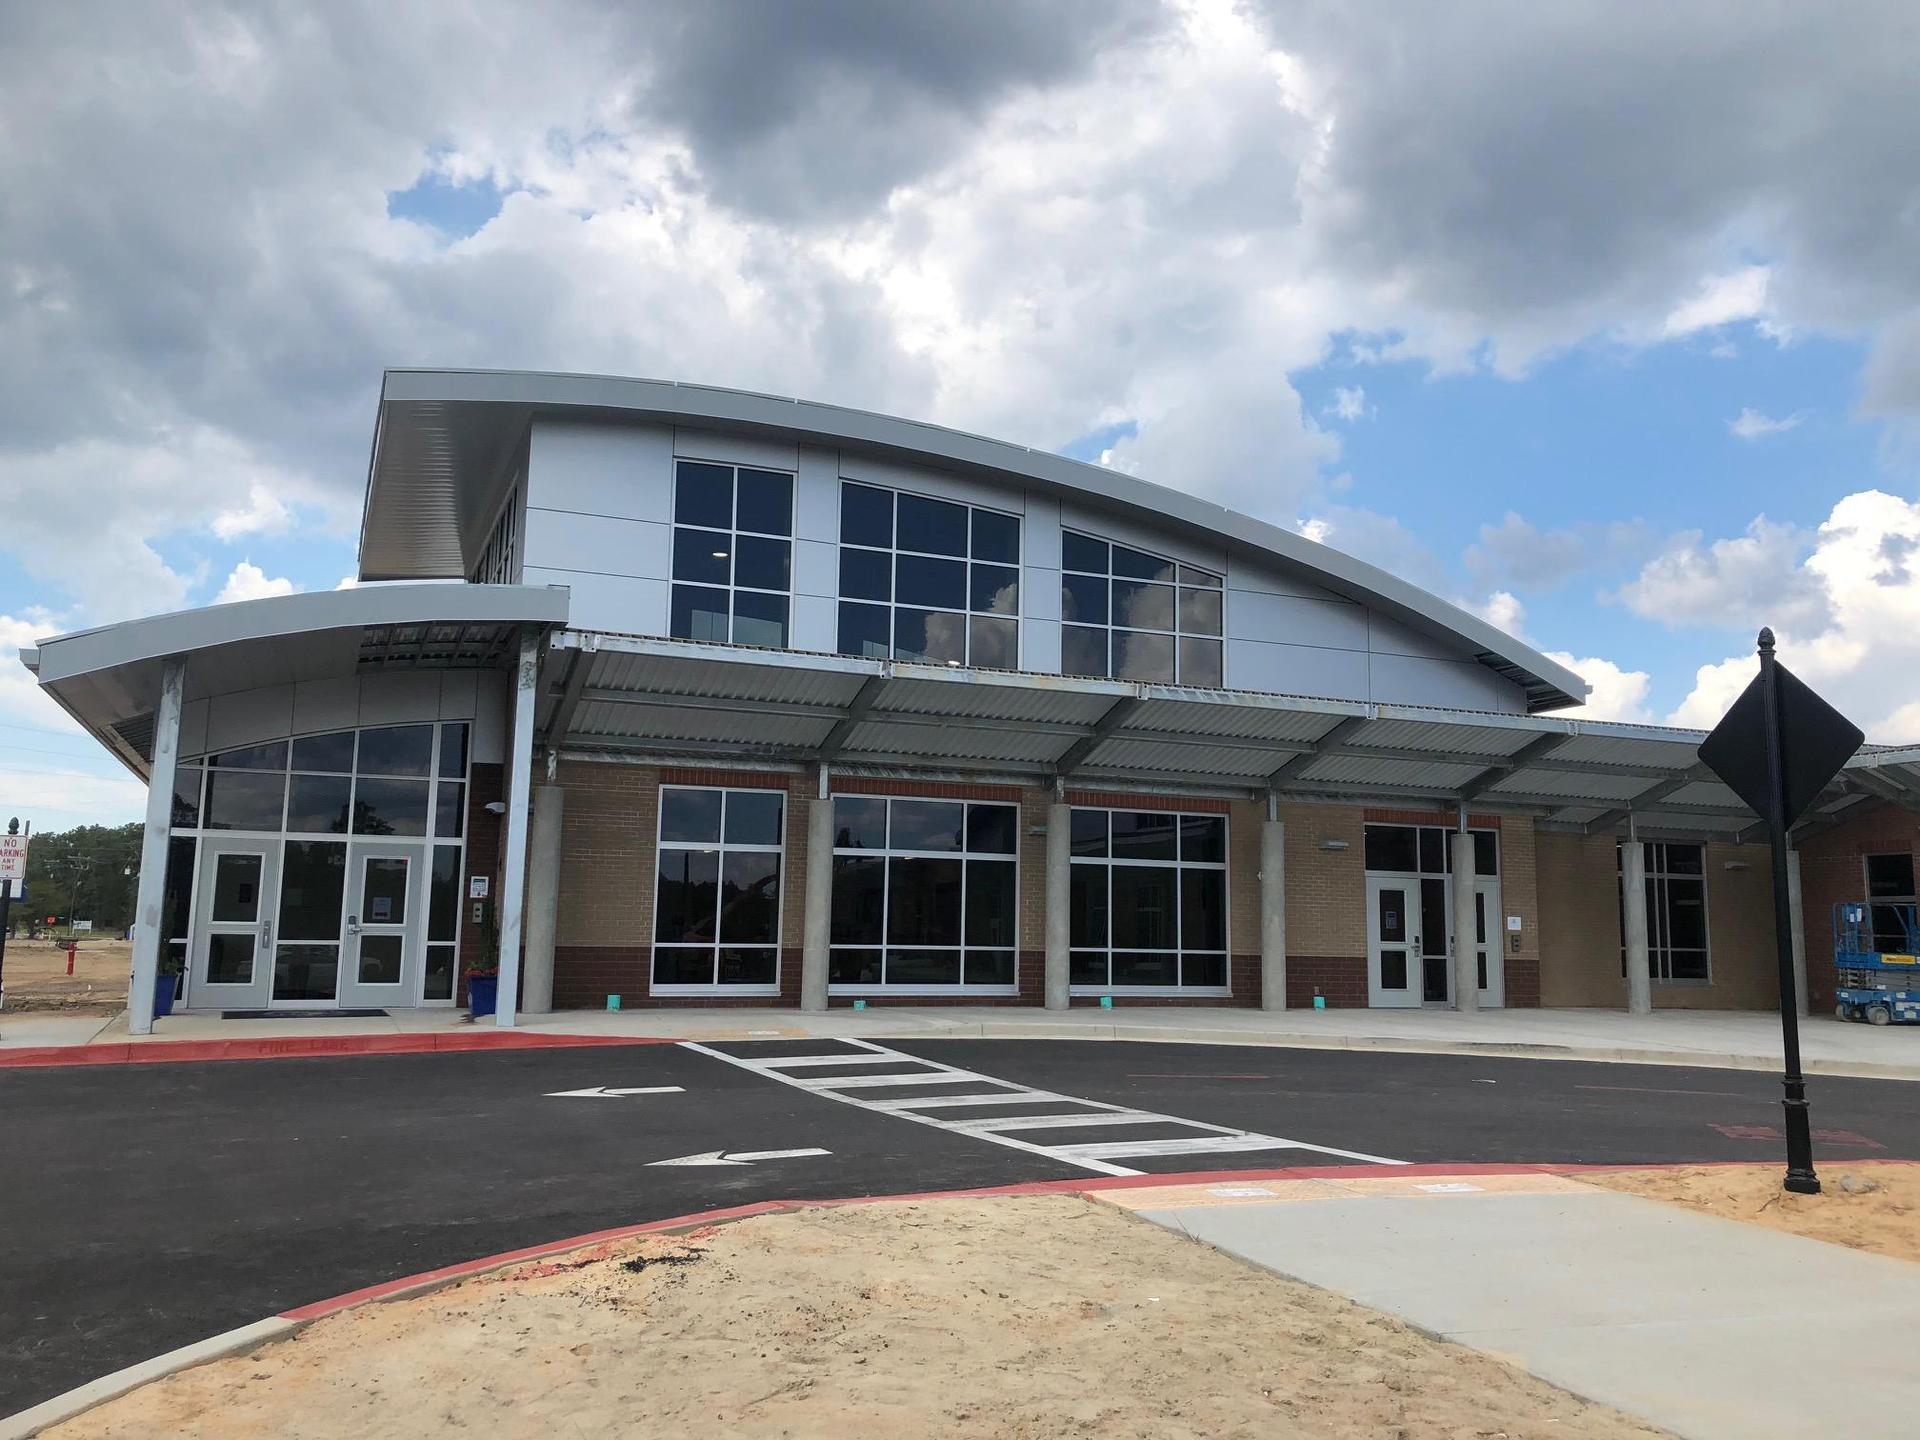 New front entrance at Springdale Elementary